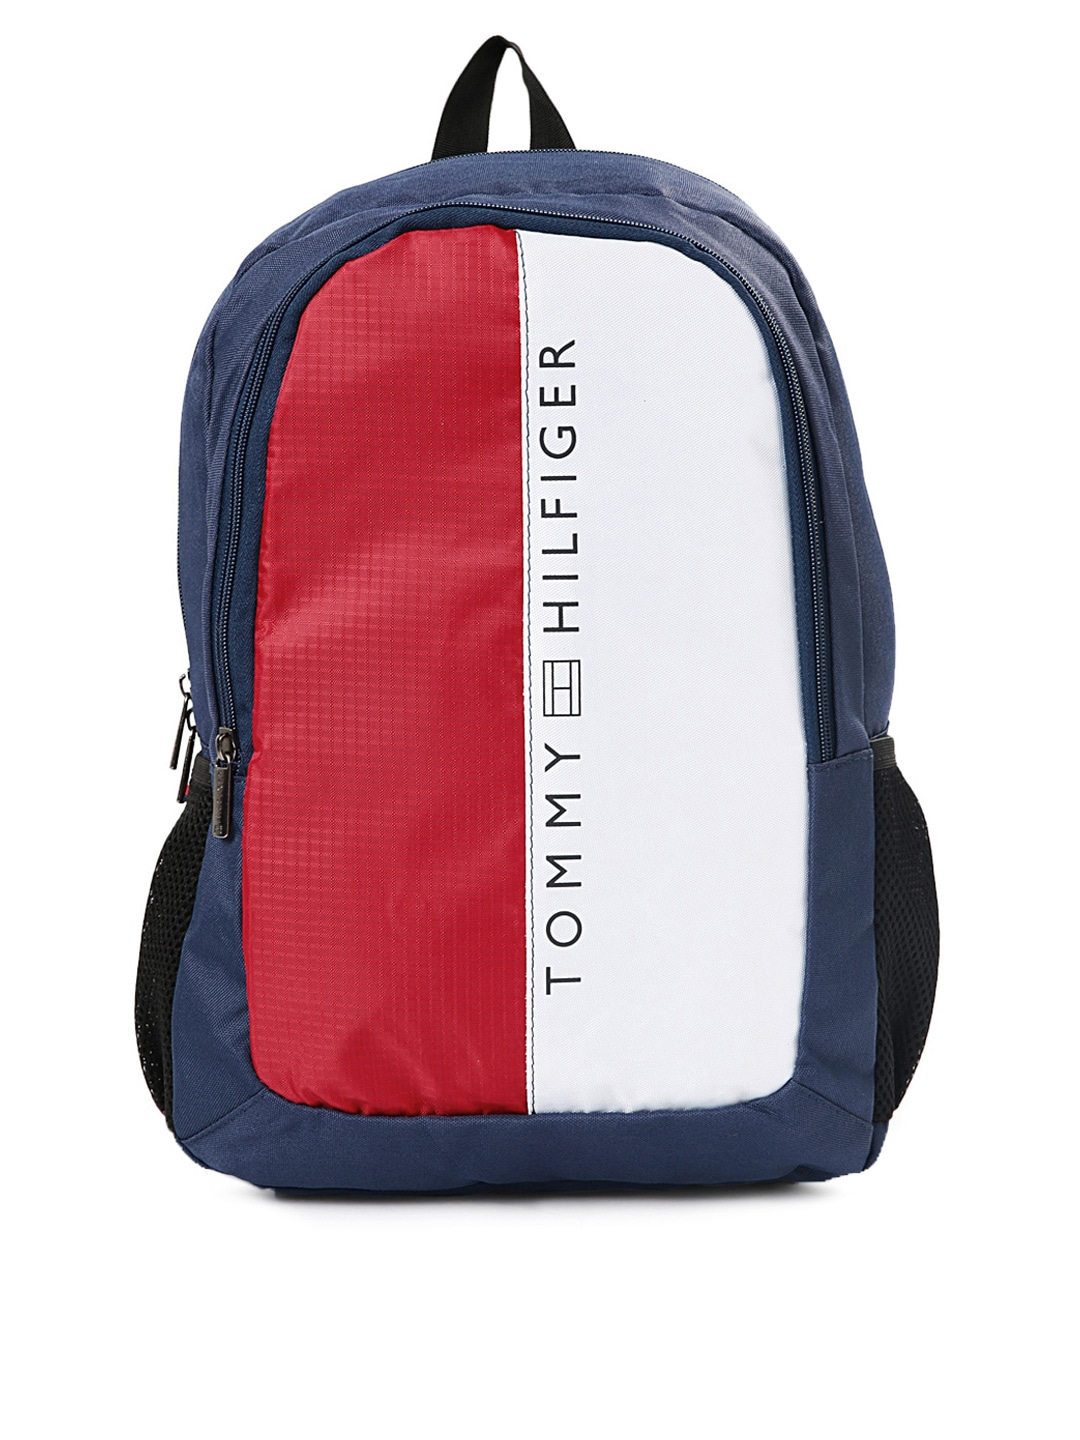 Bags Online - Shop Handbags, Laptop Bags, Travel Bags Online in India